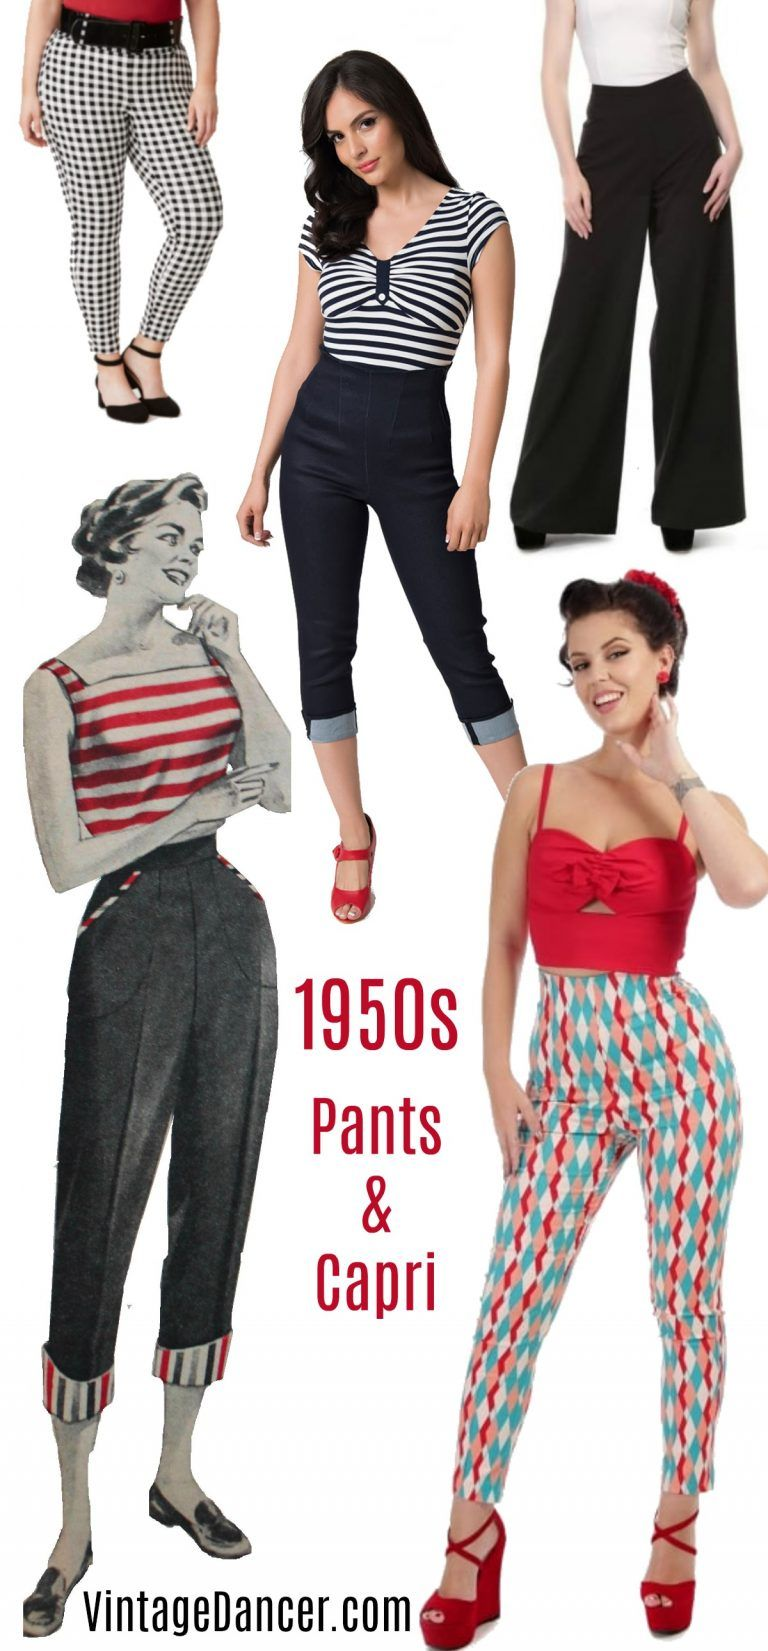 What Did Women Wear In The 1950s 1950s Fashion Guide 1950 Outfits 1950s Fashion Women 1950s Fashion